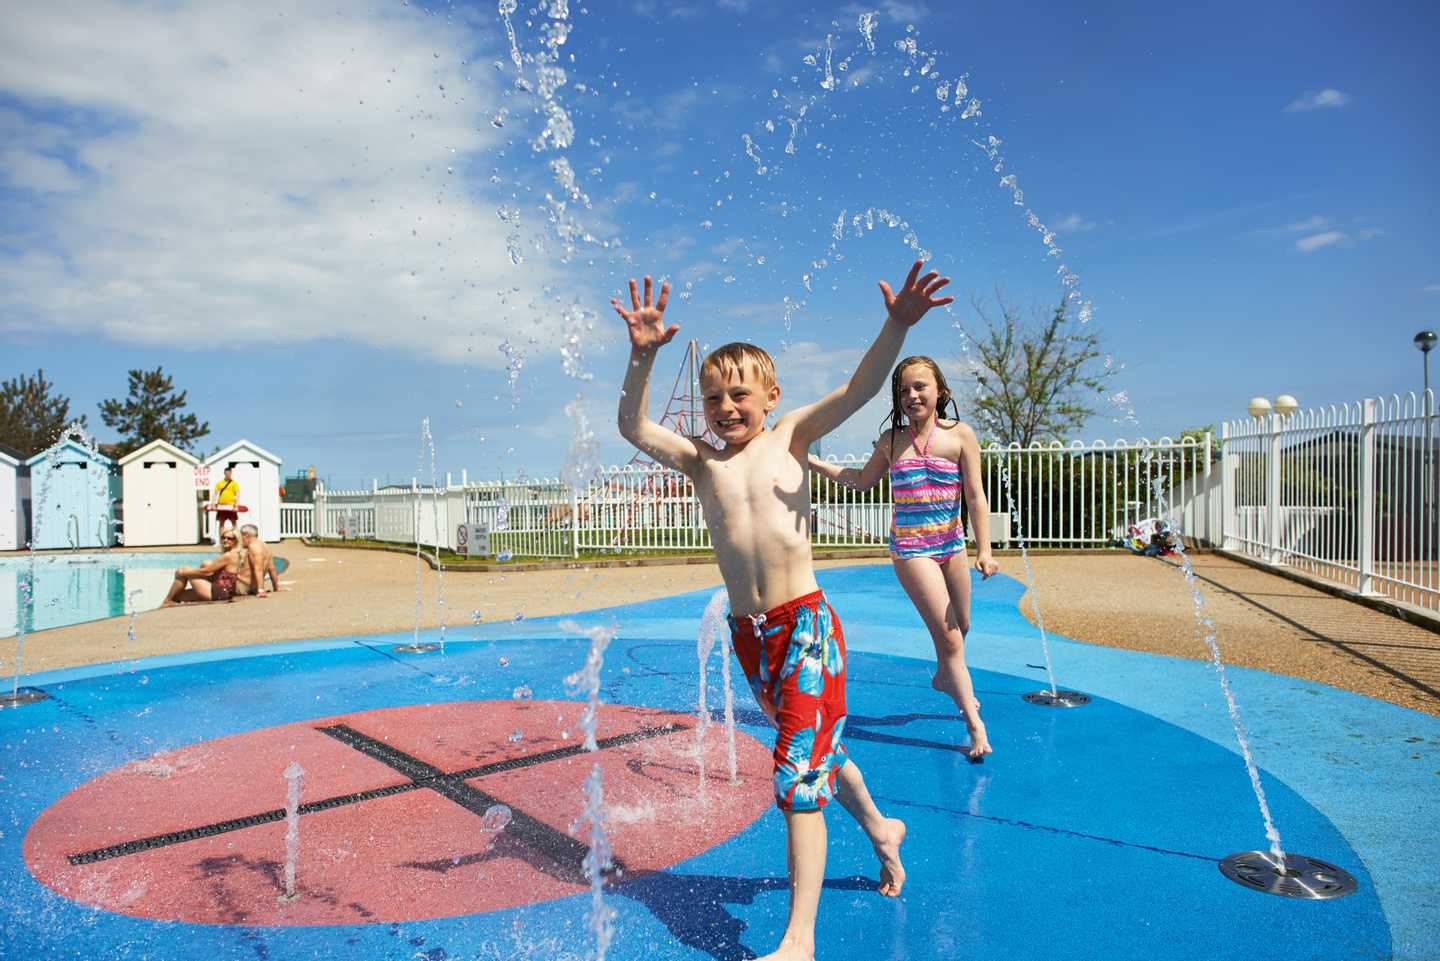 Children playing in the outdoor SplashZone at Berwick